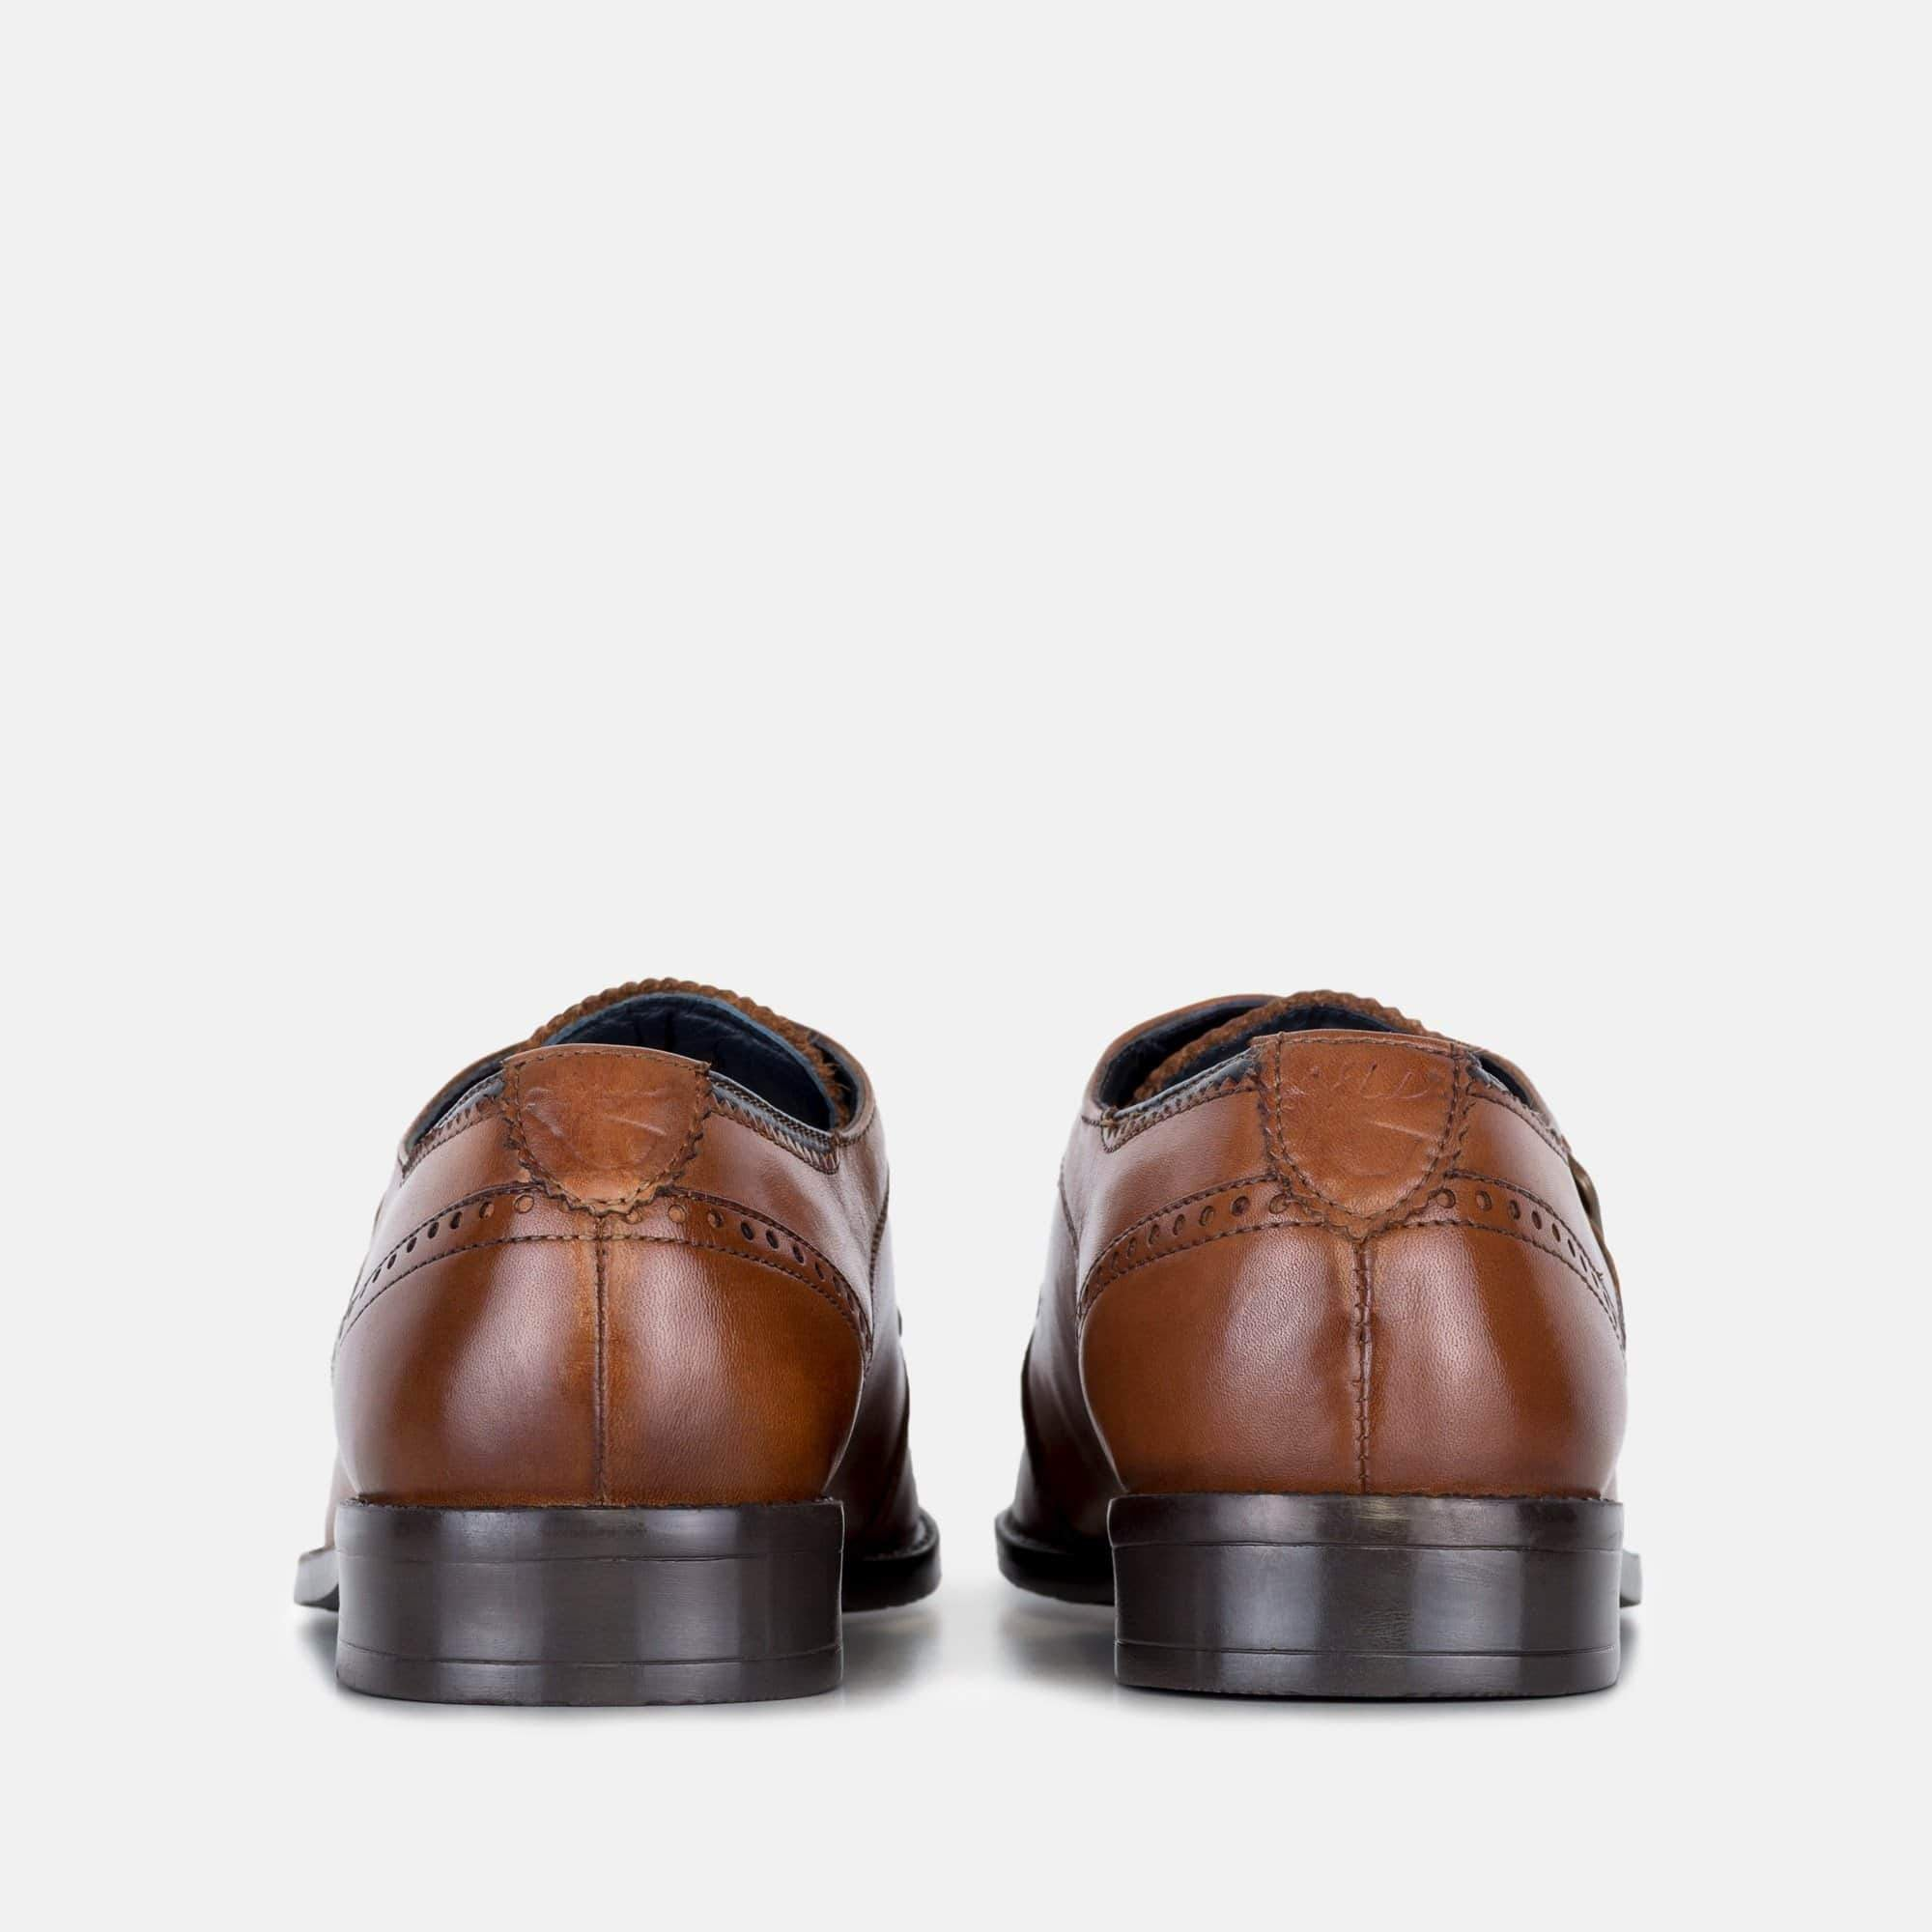 Goodwin Smith Footwear Parker Tan Leather Monk Strap Shoe